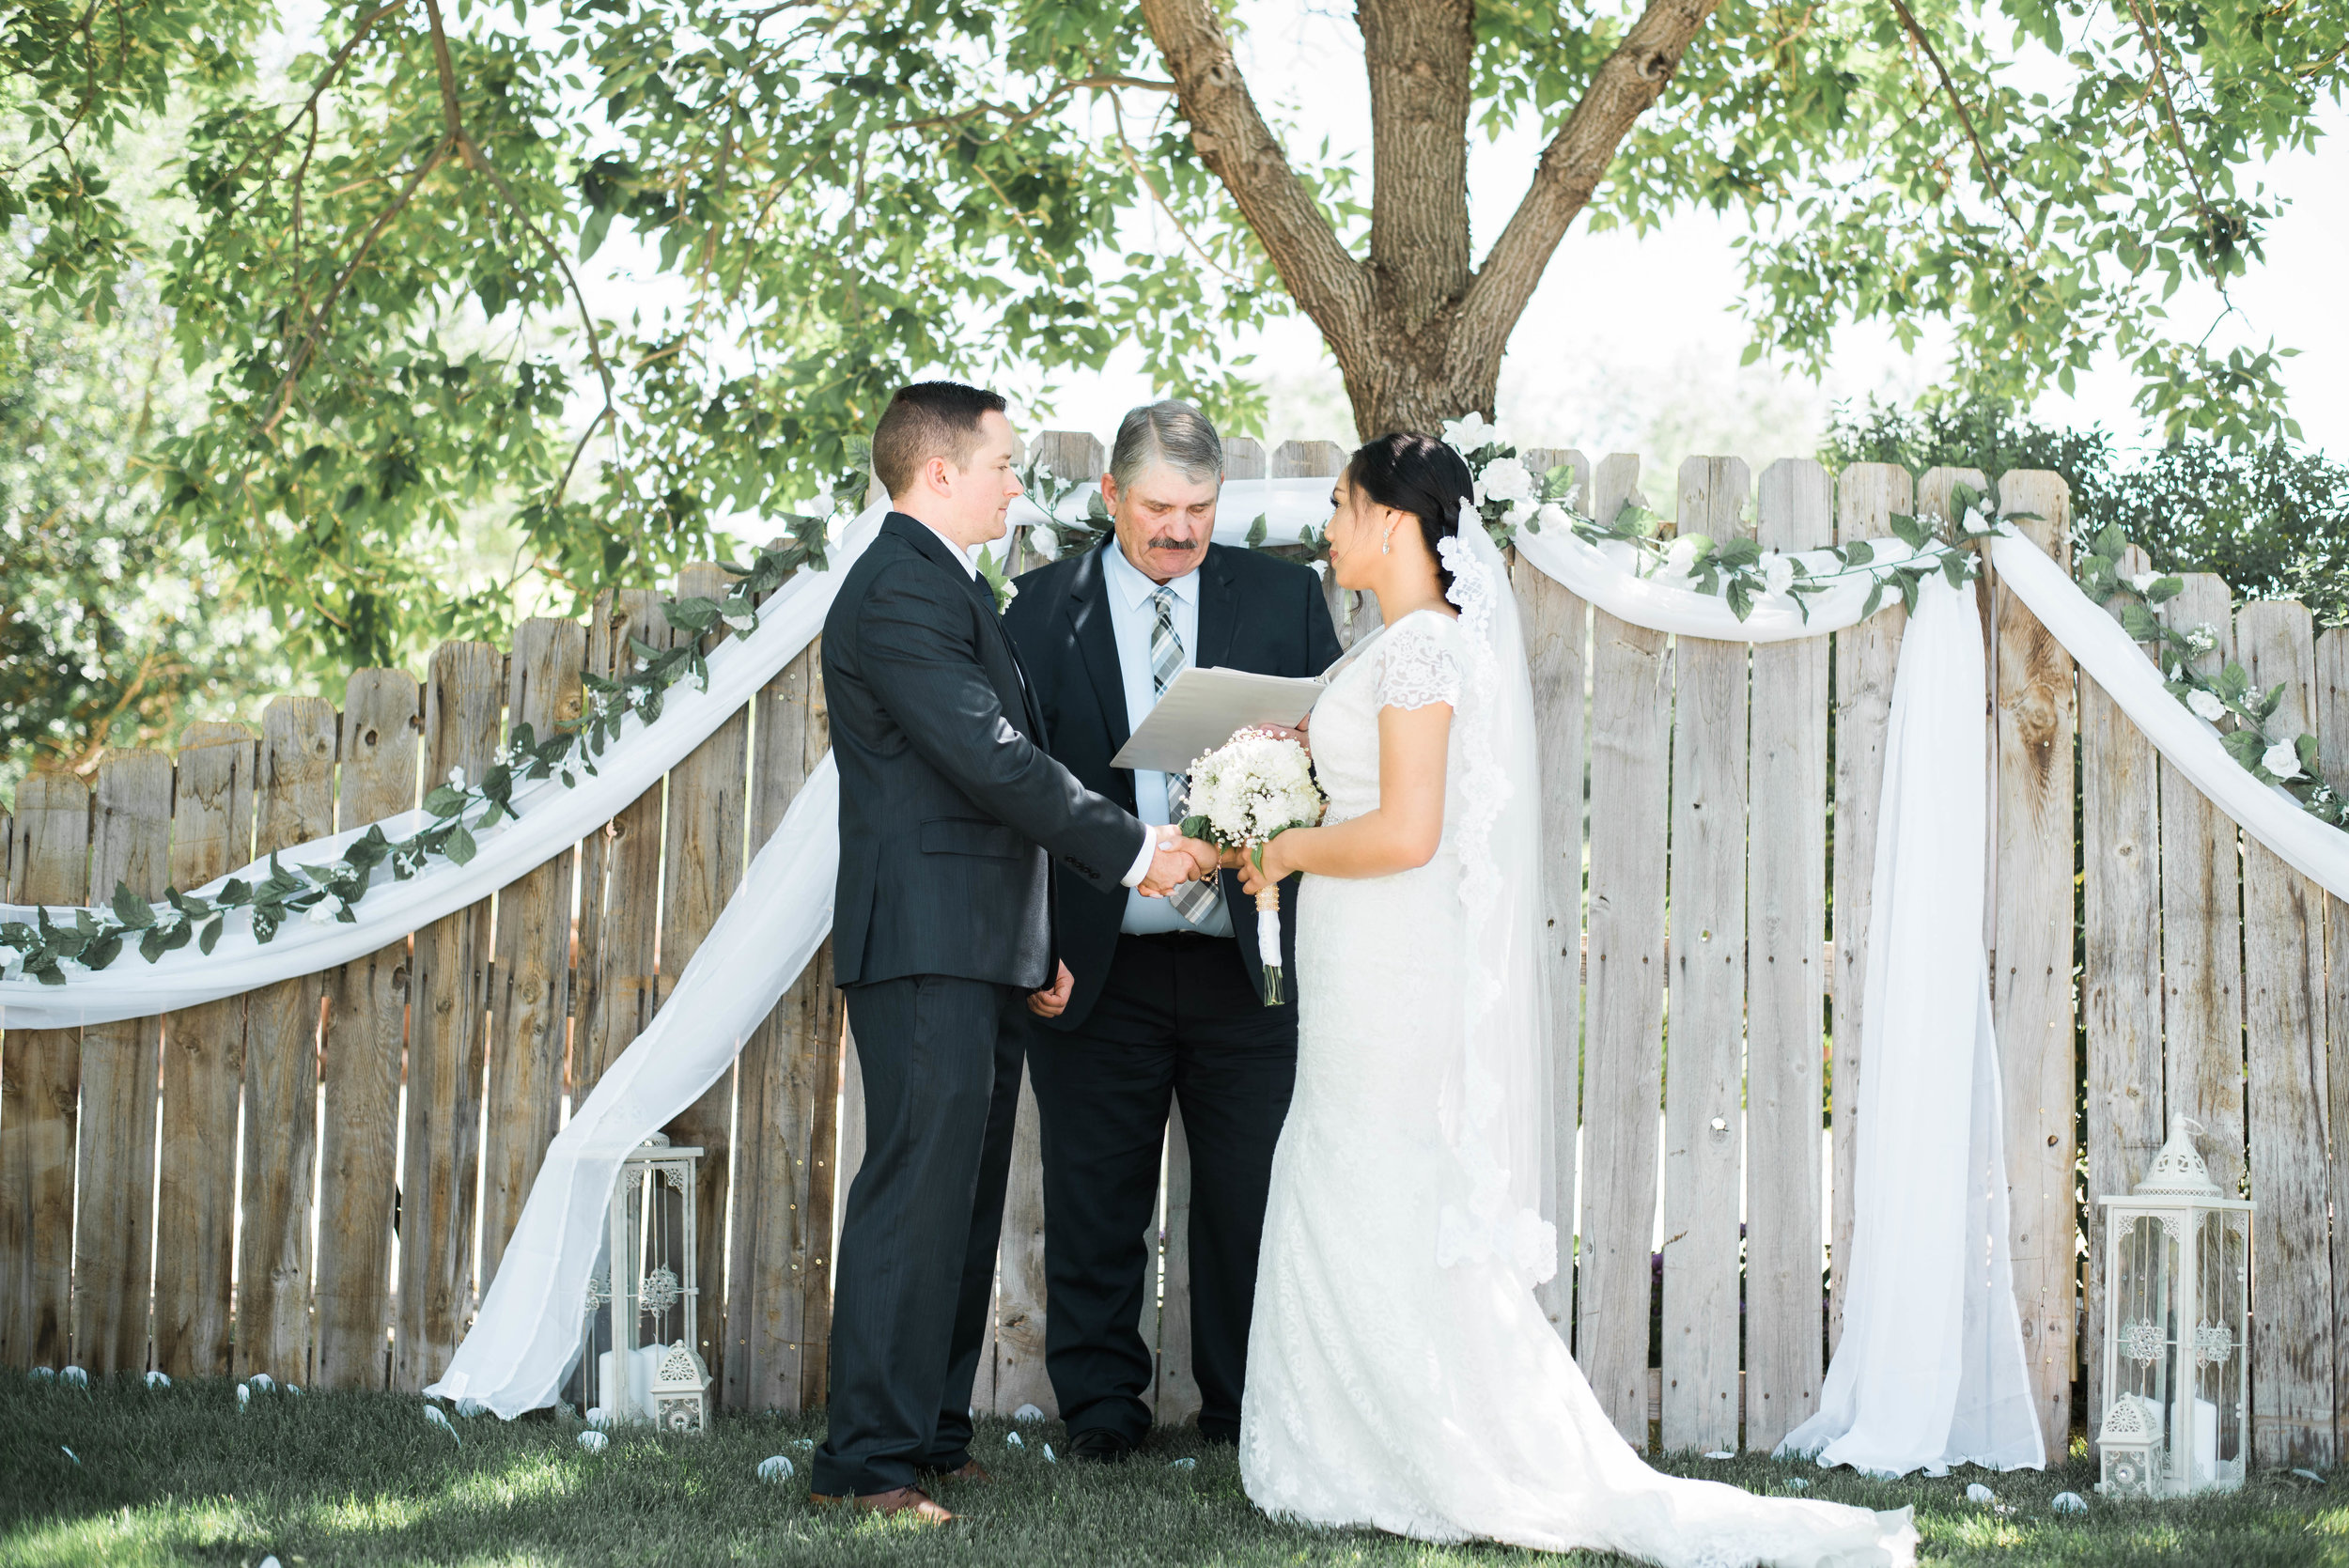 M+J-WEDDING-DAY-Sadie_Banks_Photography-152.jpg